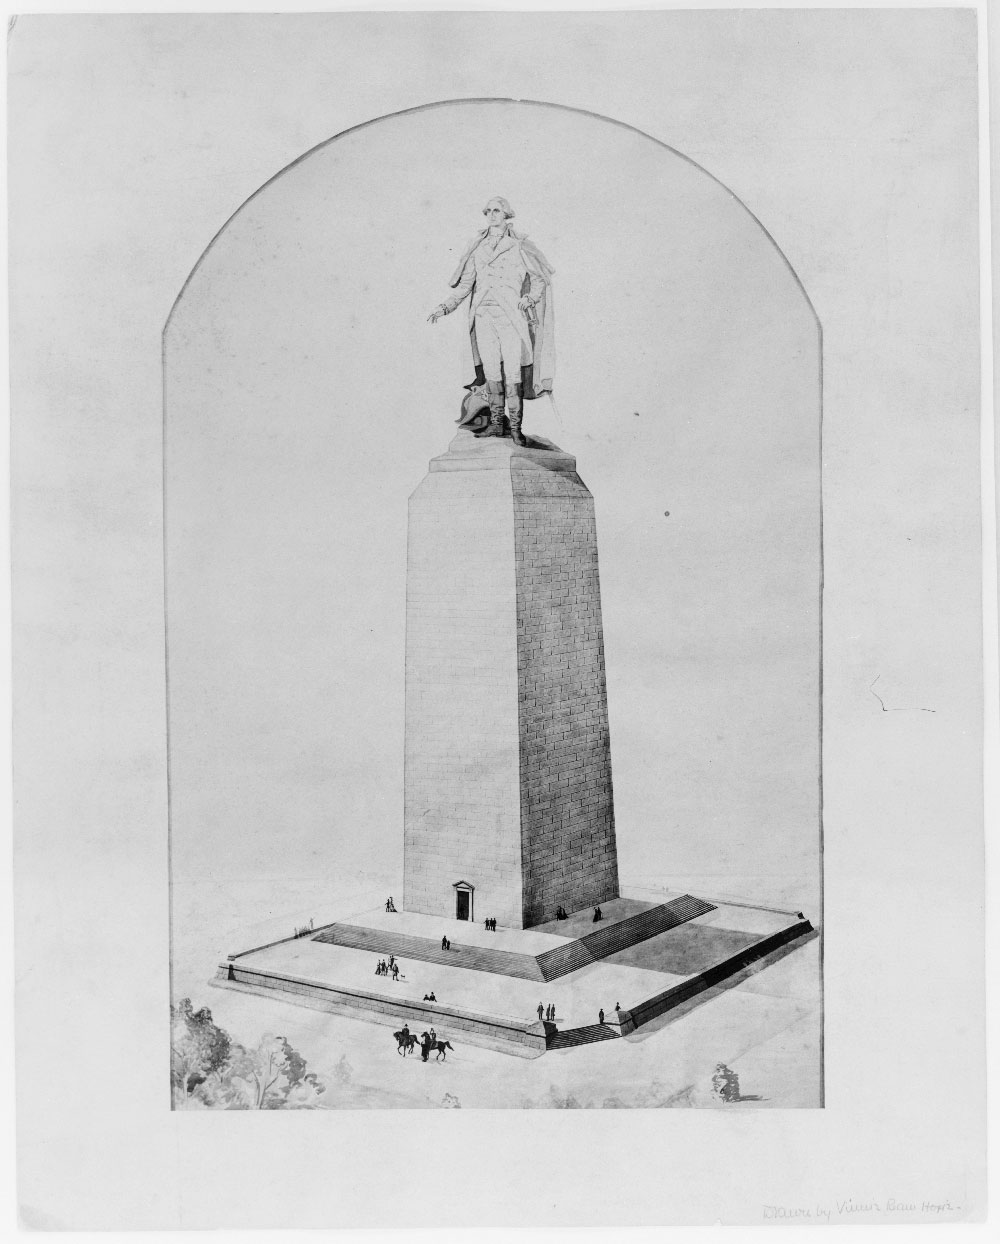 http://www.nationalbuildingmuseum.net/Large%20Images/unbuilt/4._Washington_Monument_Sheet_2_web.jpg